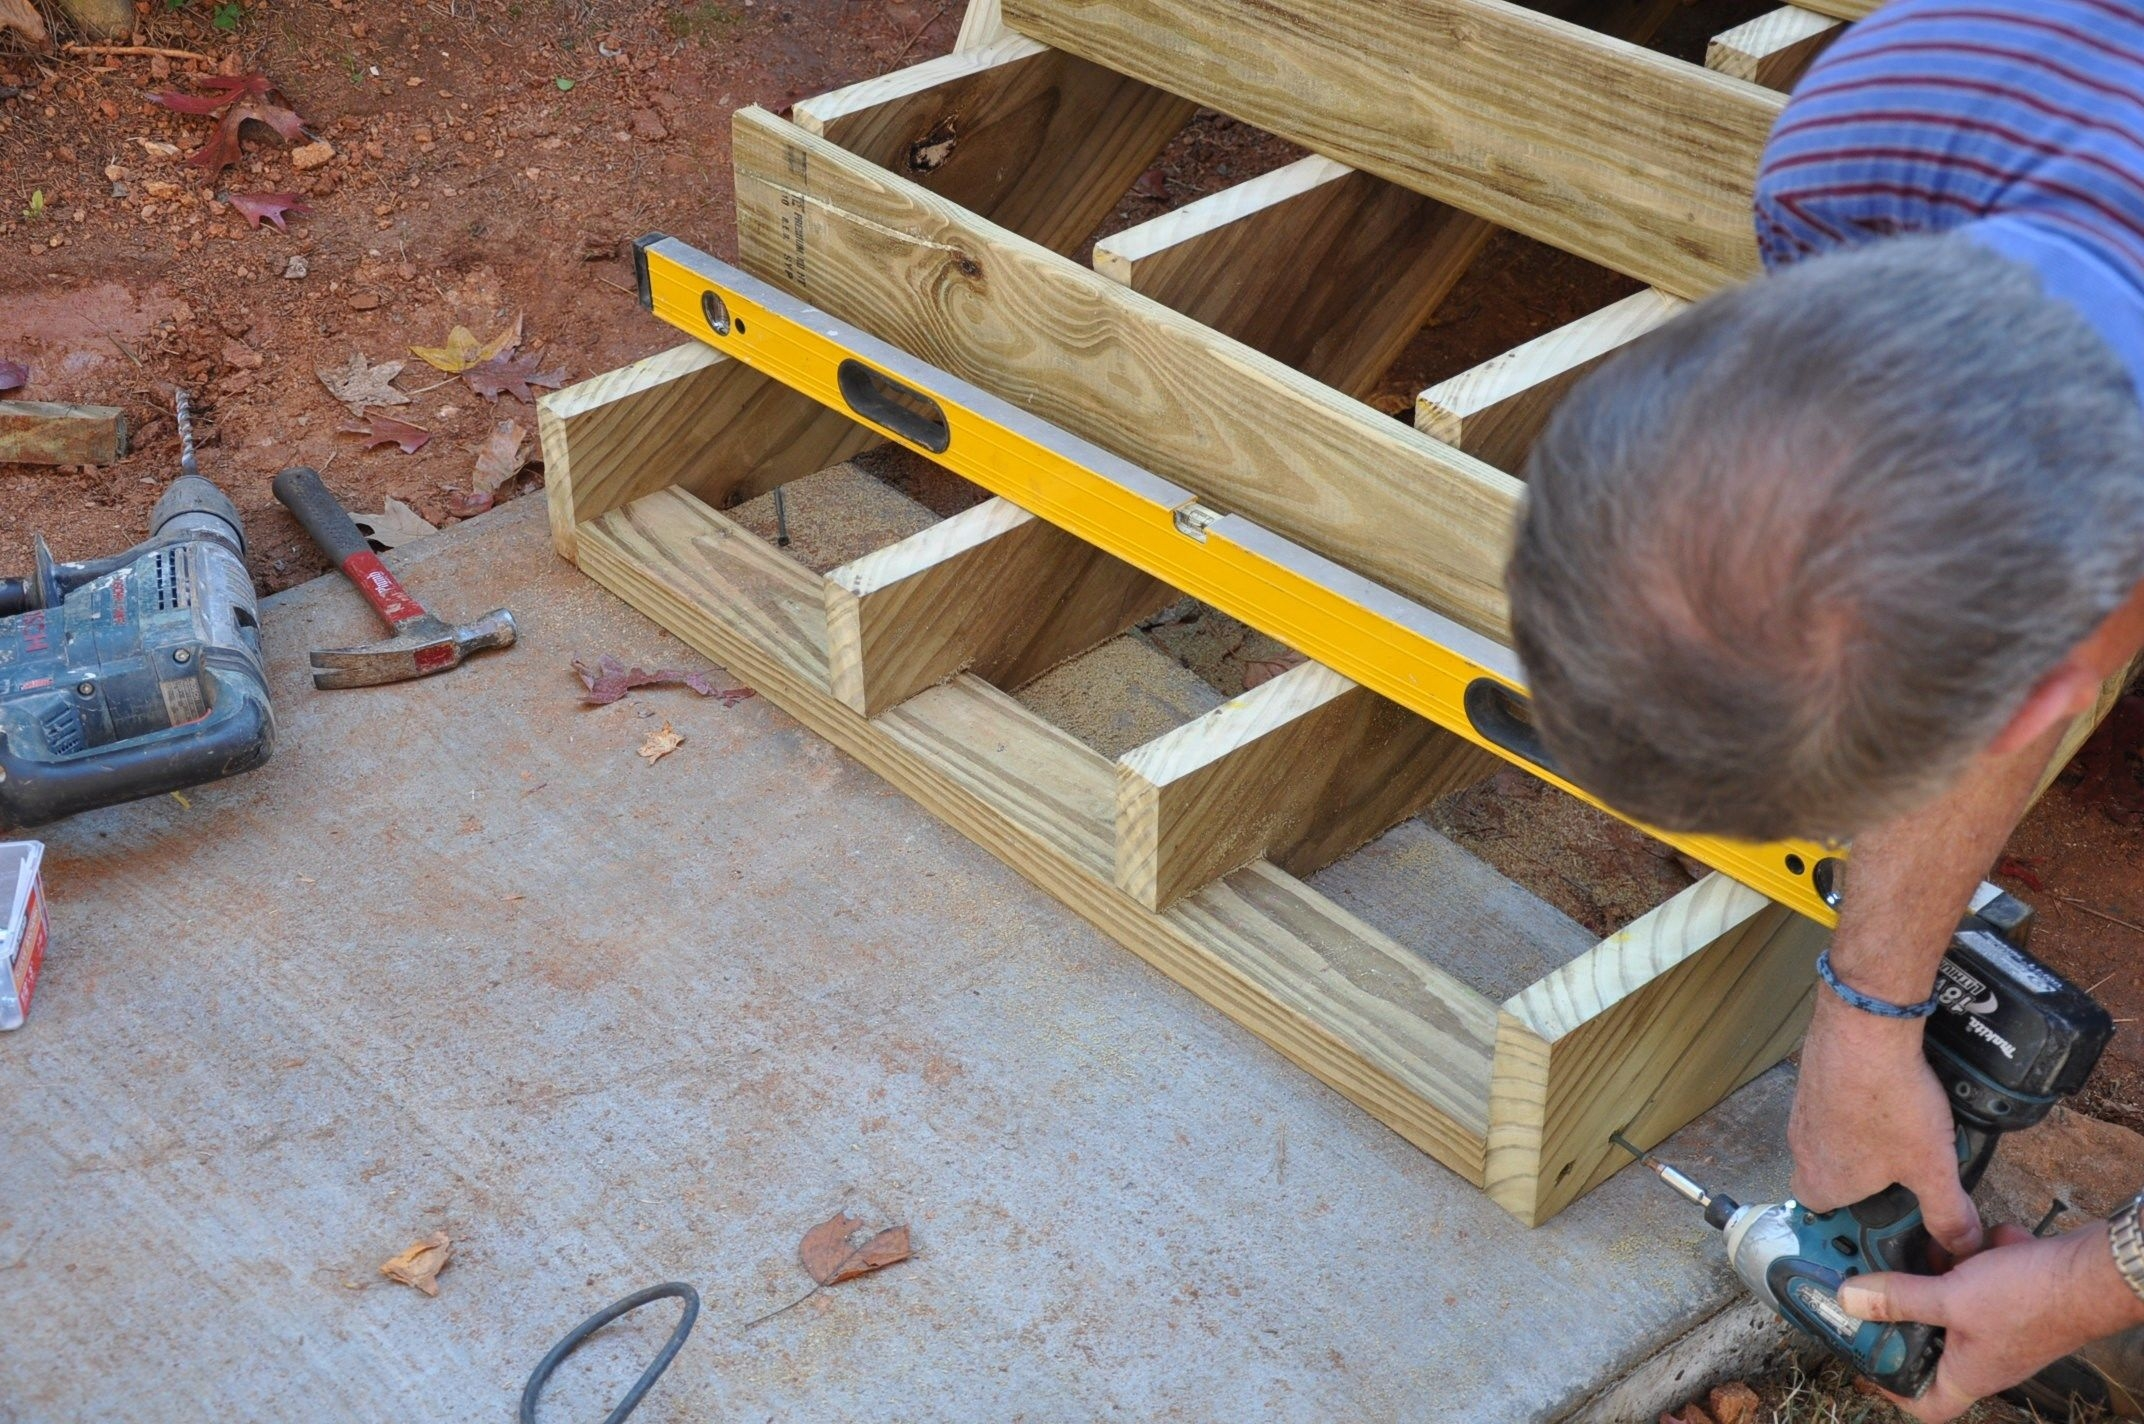 How To Anchor Deck Stairs To Concrete Decks Com | Repairing Outdoor Wooden Steps | Stair Stringer | Concrete Slab | Deck Stairs | Concrete Porch | Deck